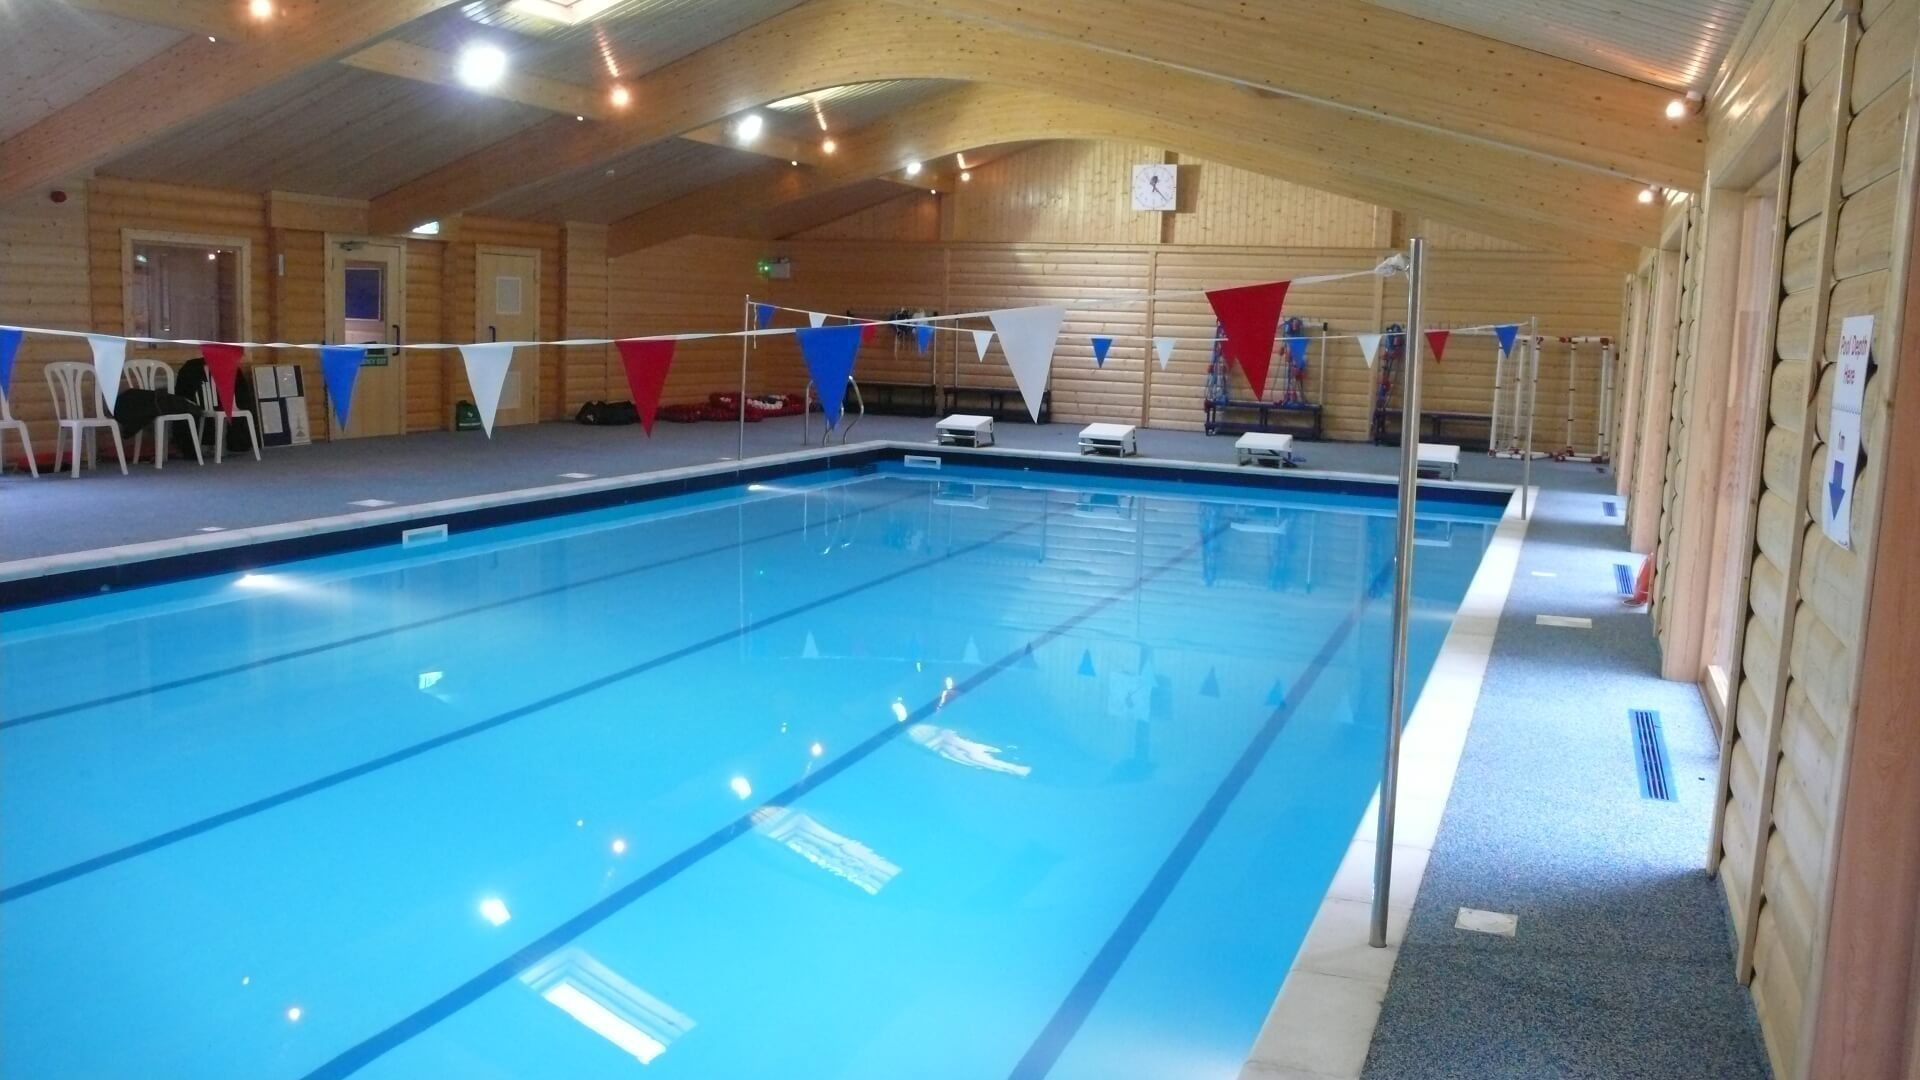 Swimming Pools For Schools Photos